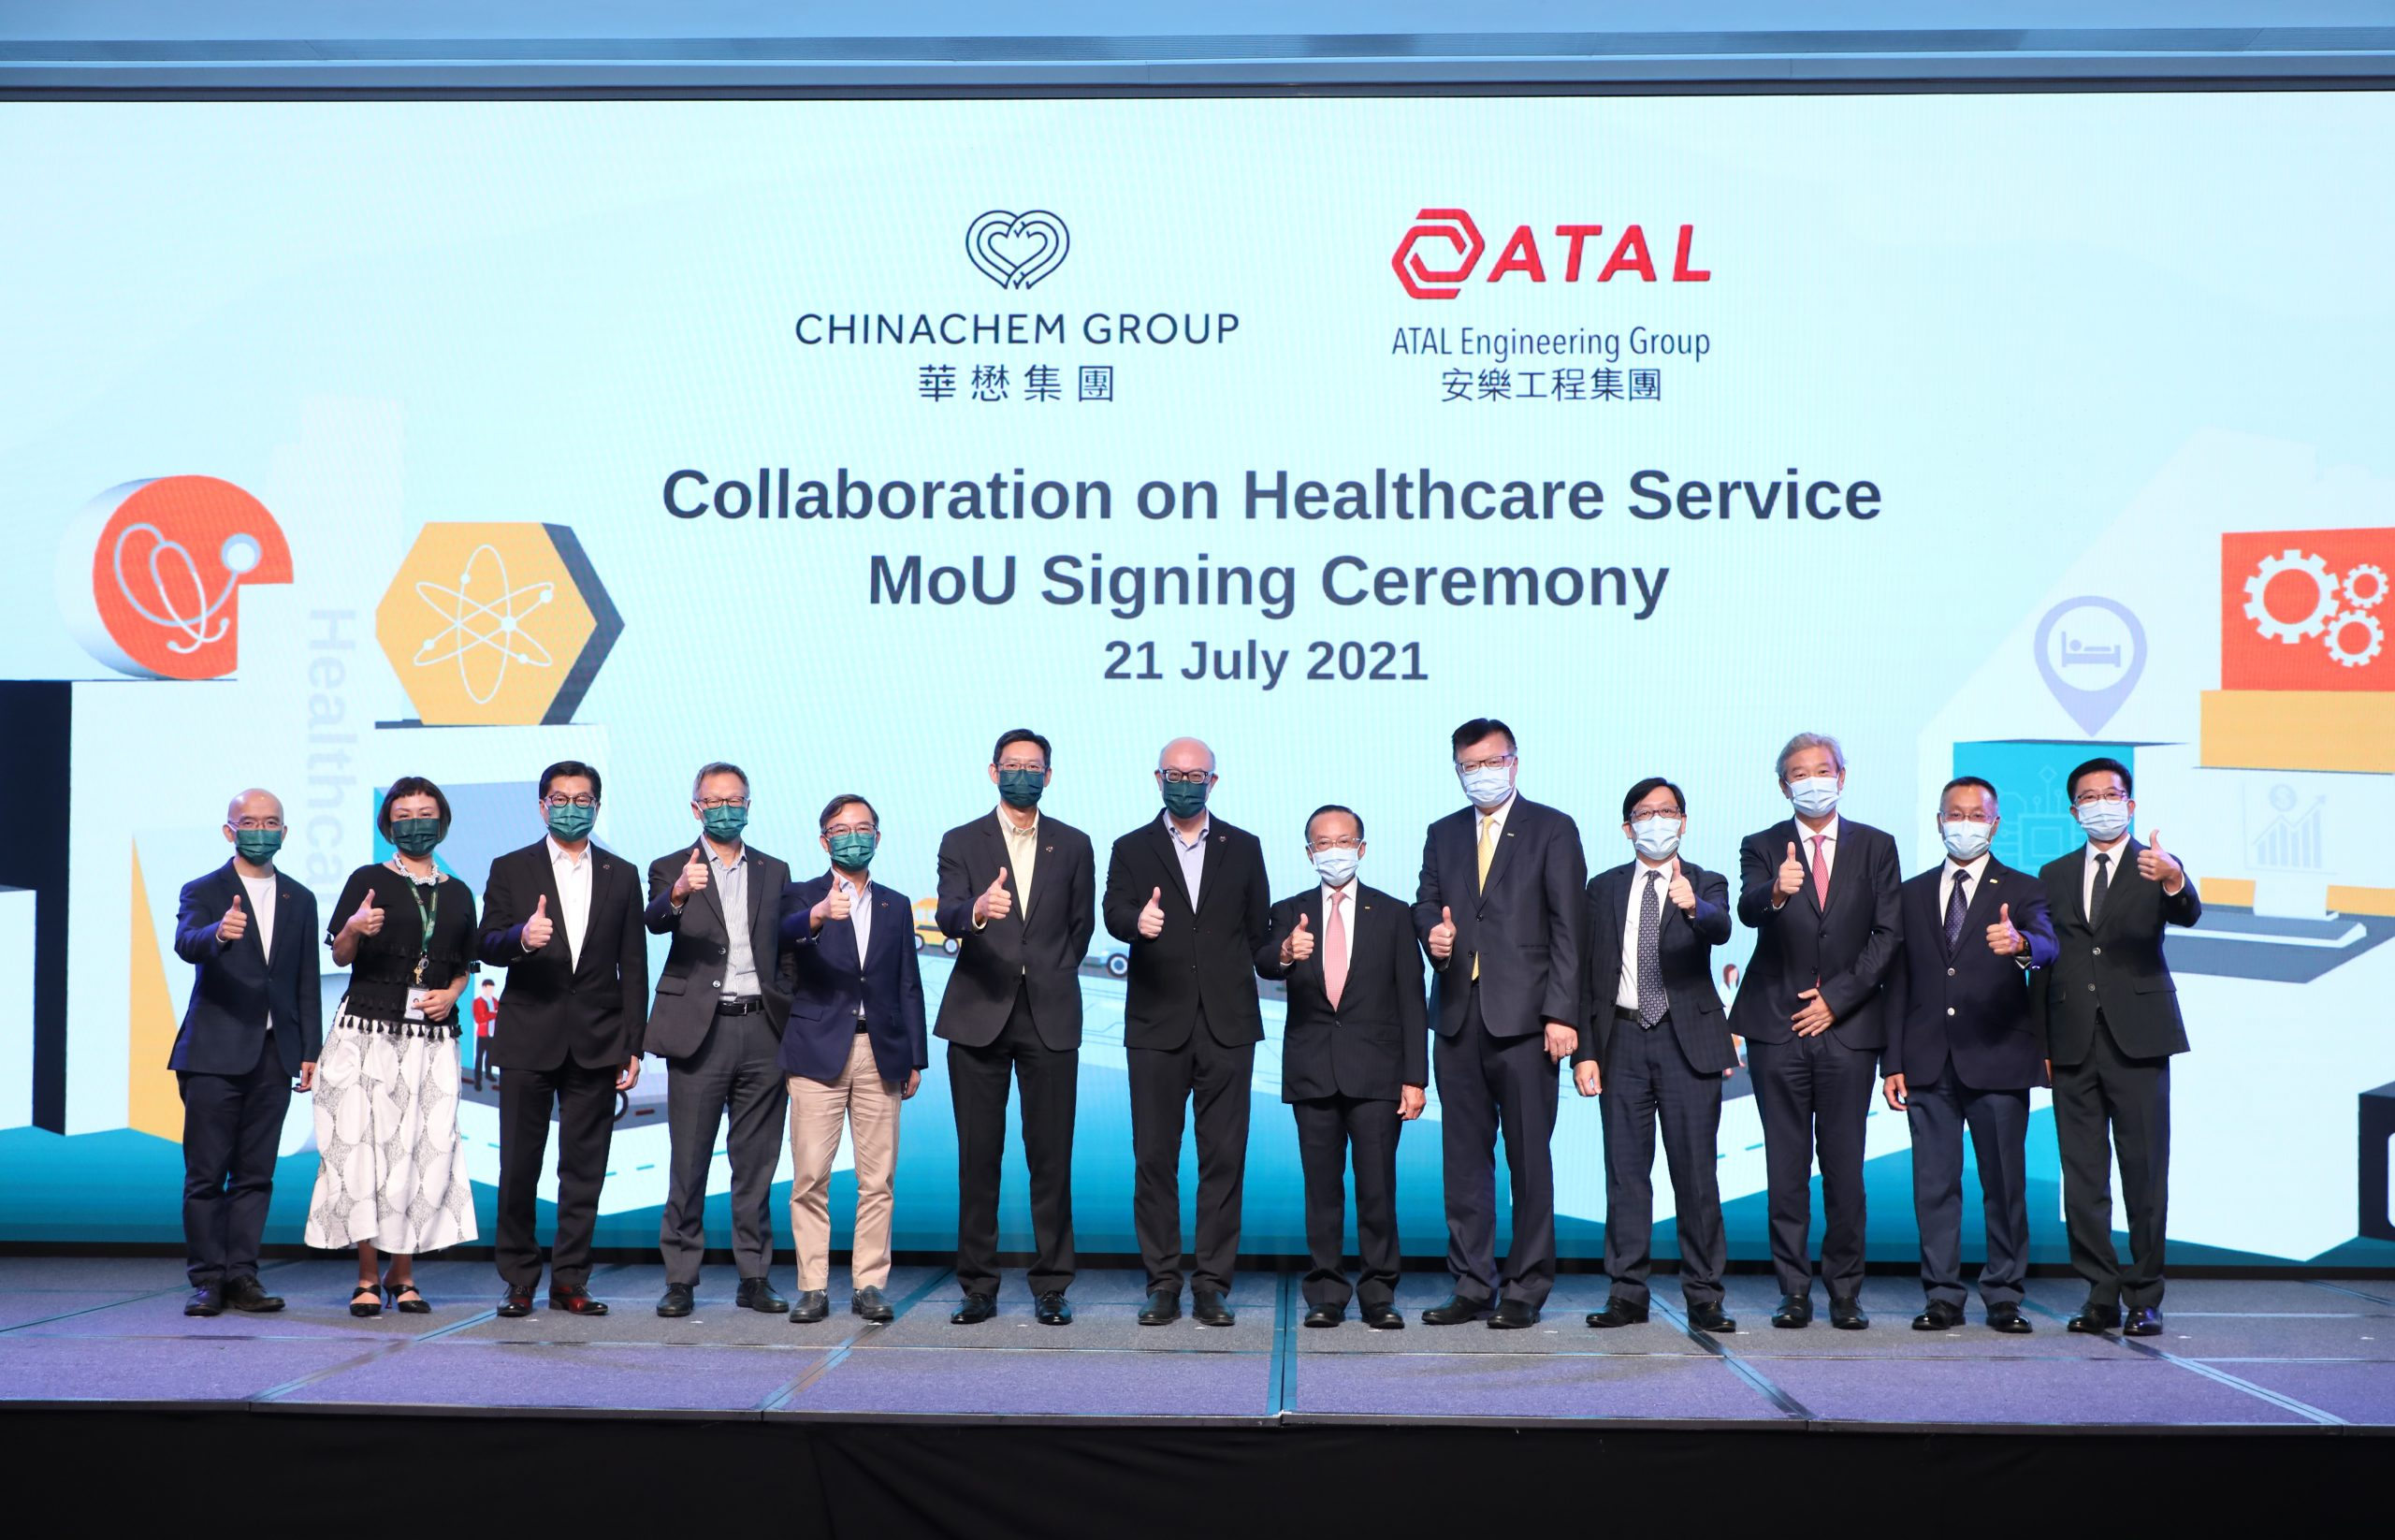 Photo 3: Group photo of Donald Choi, Executive Director and Chief Executive Officer of Chinachem Group (Centre); Hung Han Wong, Executive Director and Chief Operating Officer of Chinachem Group (6th left); Dr Otto Poon, Chairman of ATAL Engineering Group (6 th right); Victor Law, Managing Director of ATAL Engineering Group (5th right); and senior management members of Chinachem Group and ATAL Engineering Group.